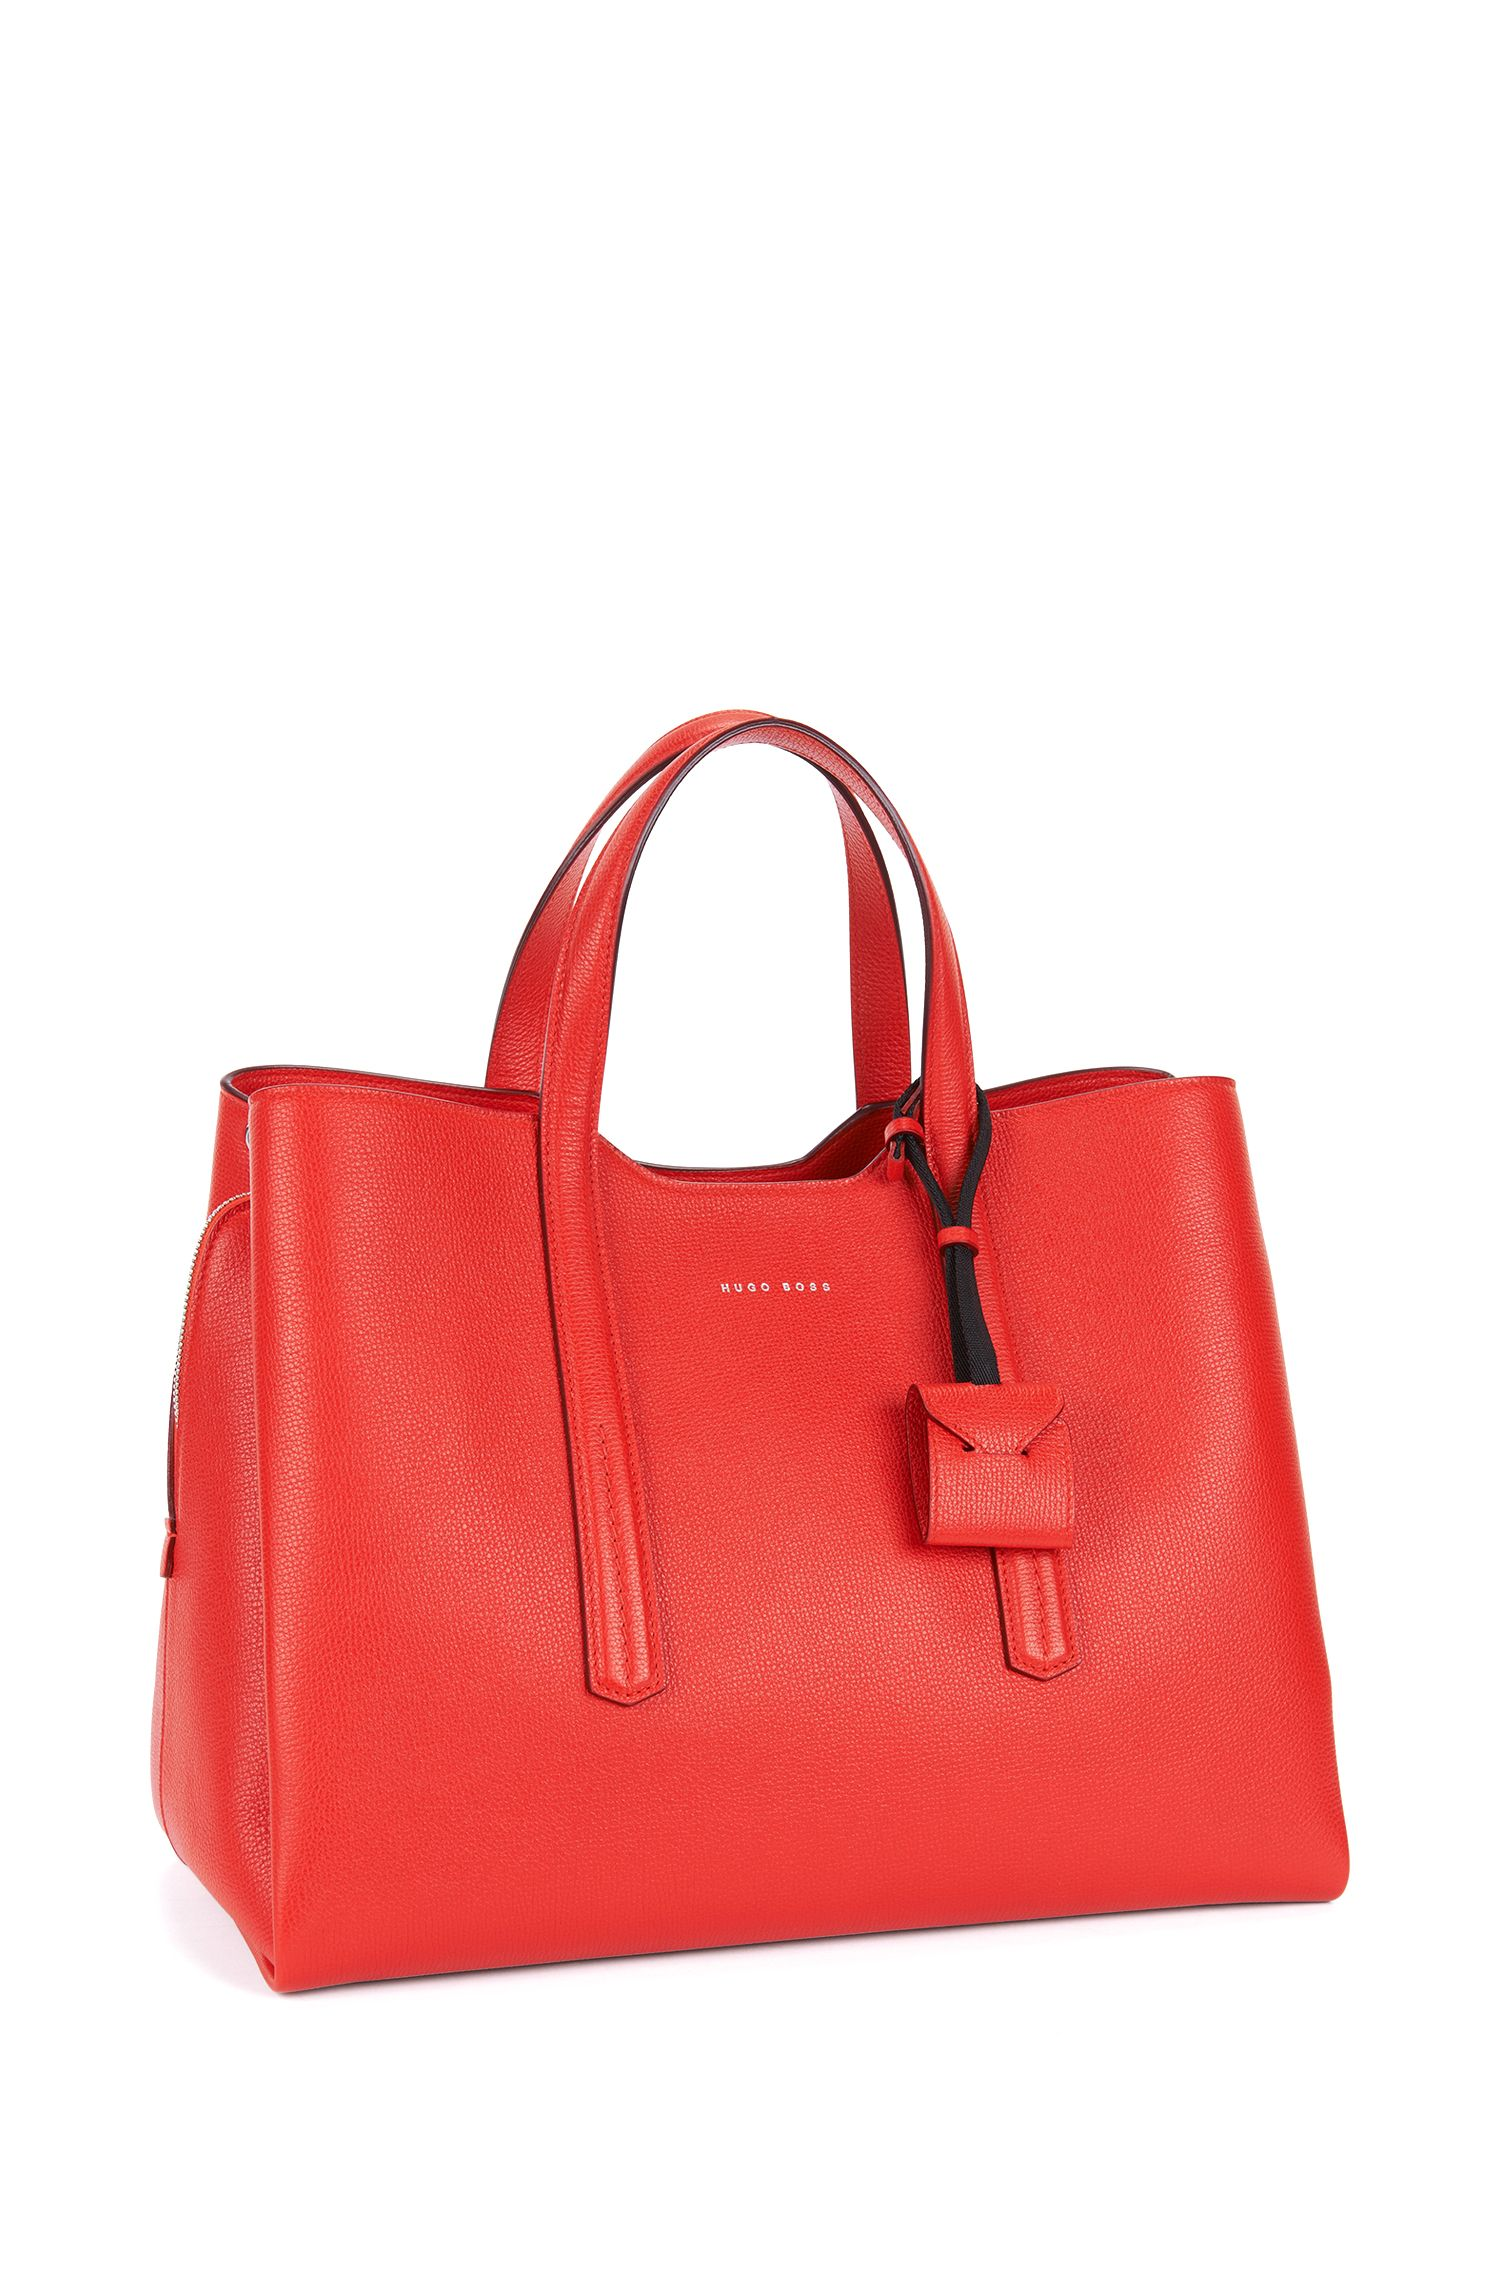 Full-Grain Leather Tote | Taylor Tote, Red